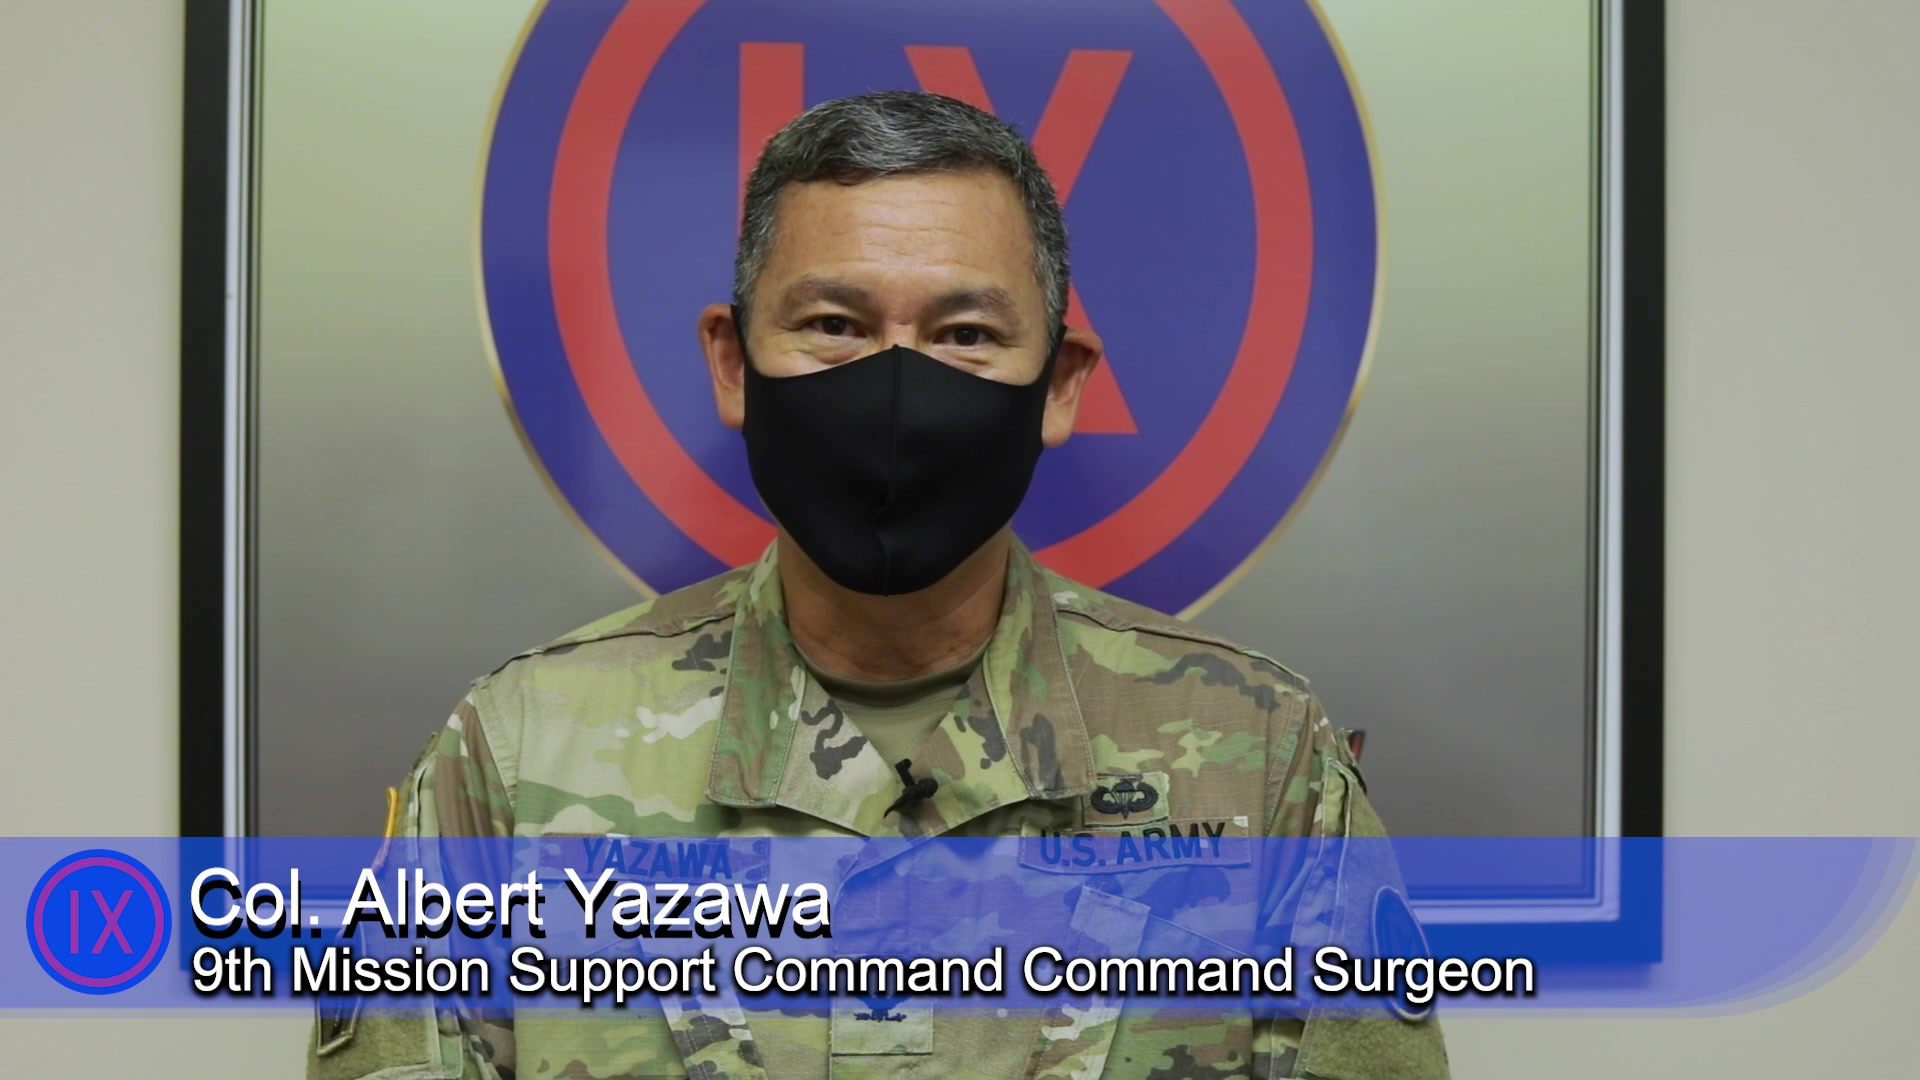 9th Mission Support Command Command Surgeon Col. Albert Yazawa speaks on the importance of 9th MSC service members getting and reporting vaccinations, on August 13 2021 at Fort Shafter Flats, in Honolulu.  Yazawa also addresses the rising case numbers surrounding the COVID-19 delta variant.